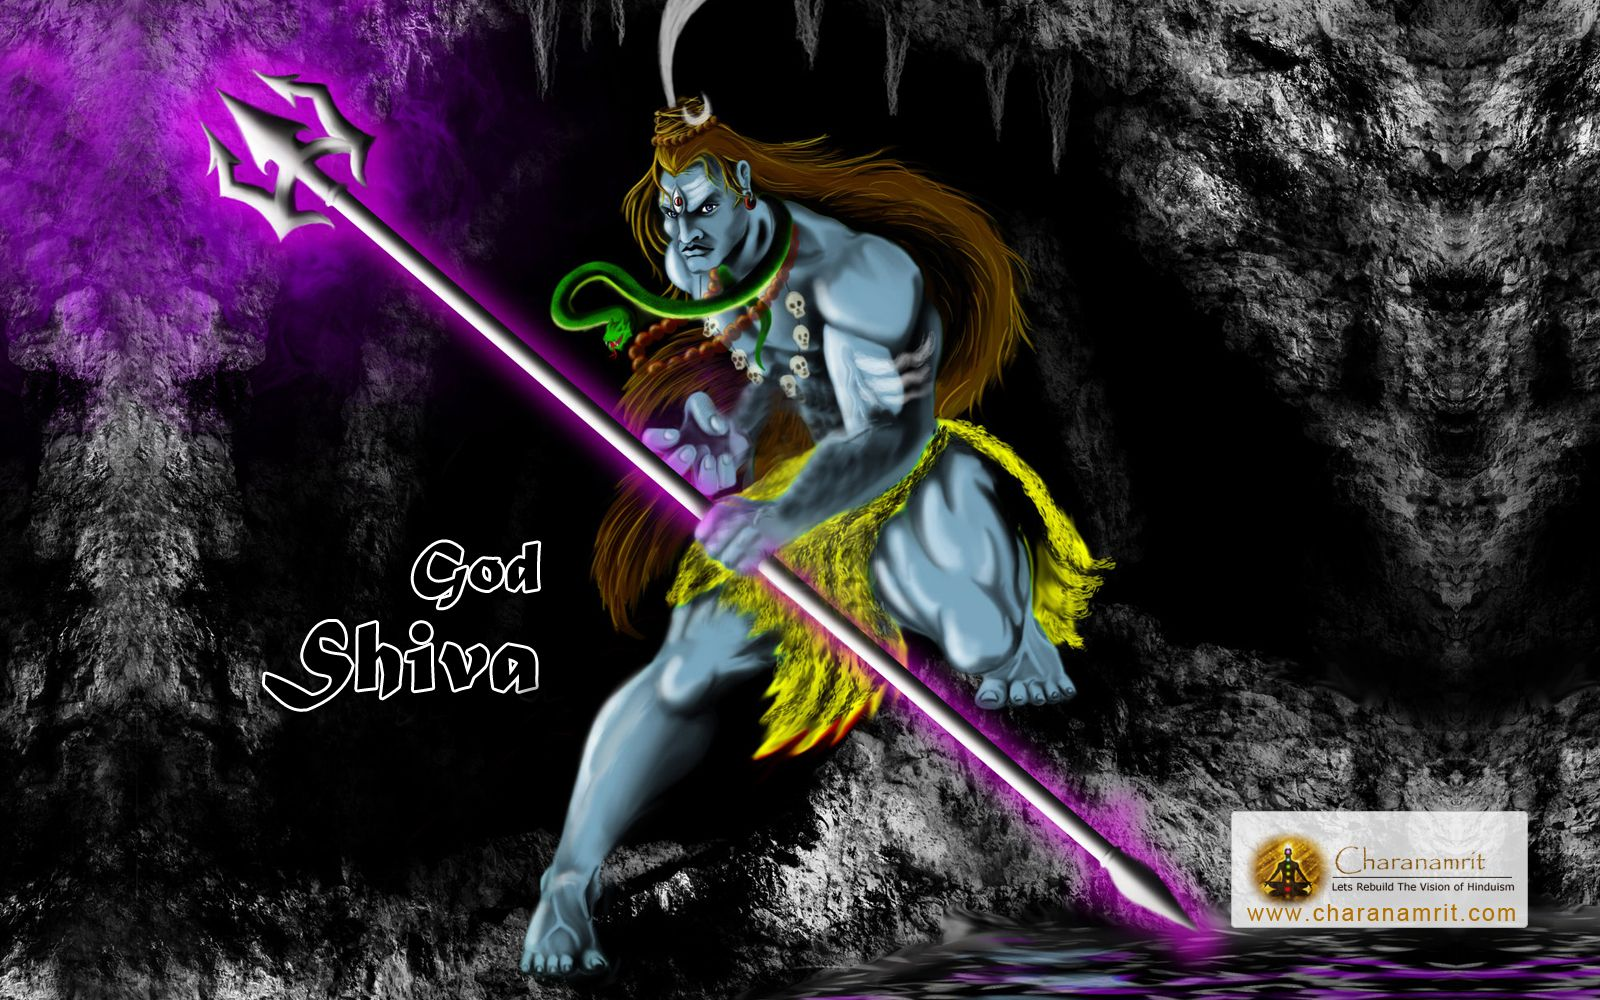 Wallpaper download action - Free Download Lord Shiva Action Wallpapers On The Festival Of Upcoming Sawan Shiv Ratri Charanamrit